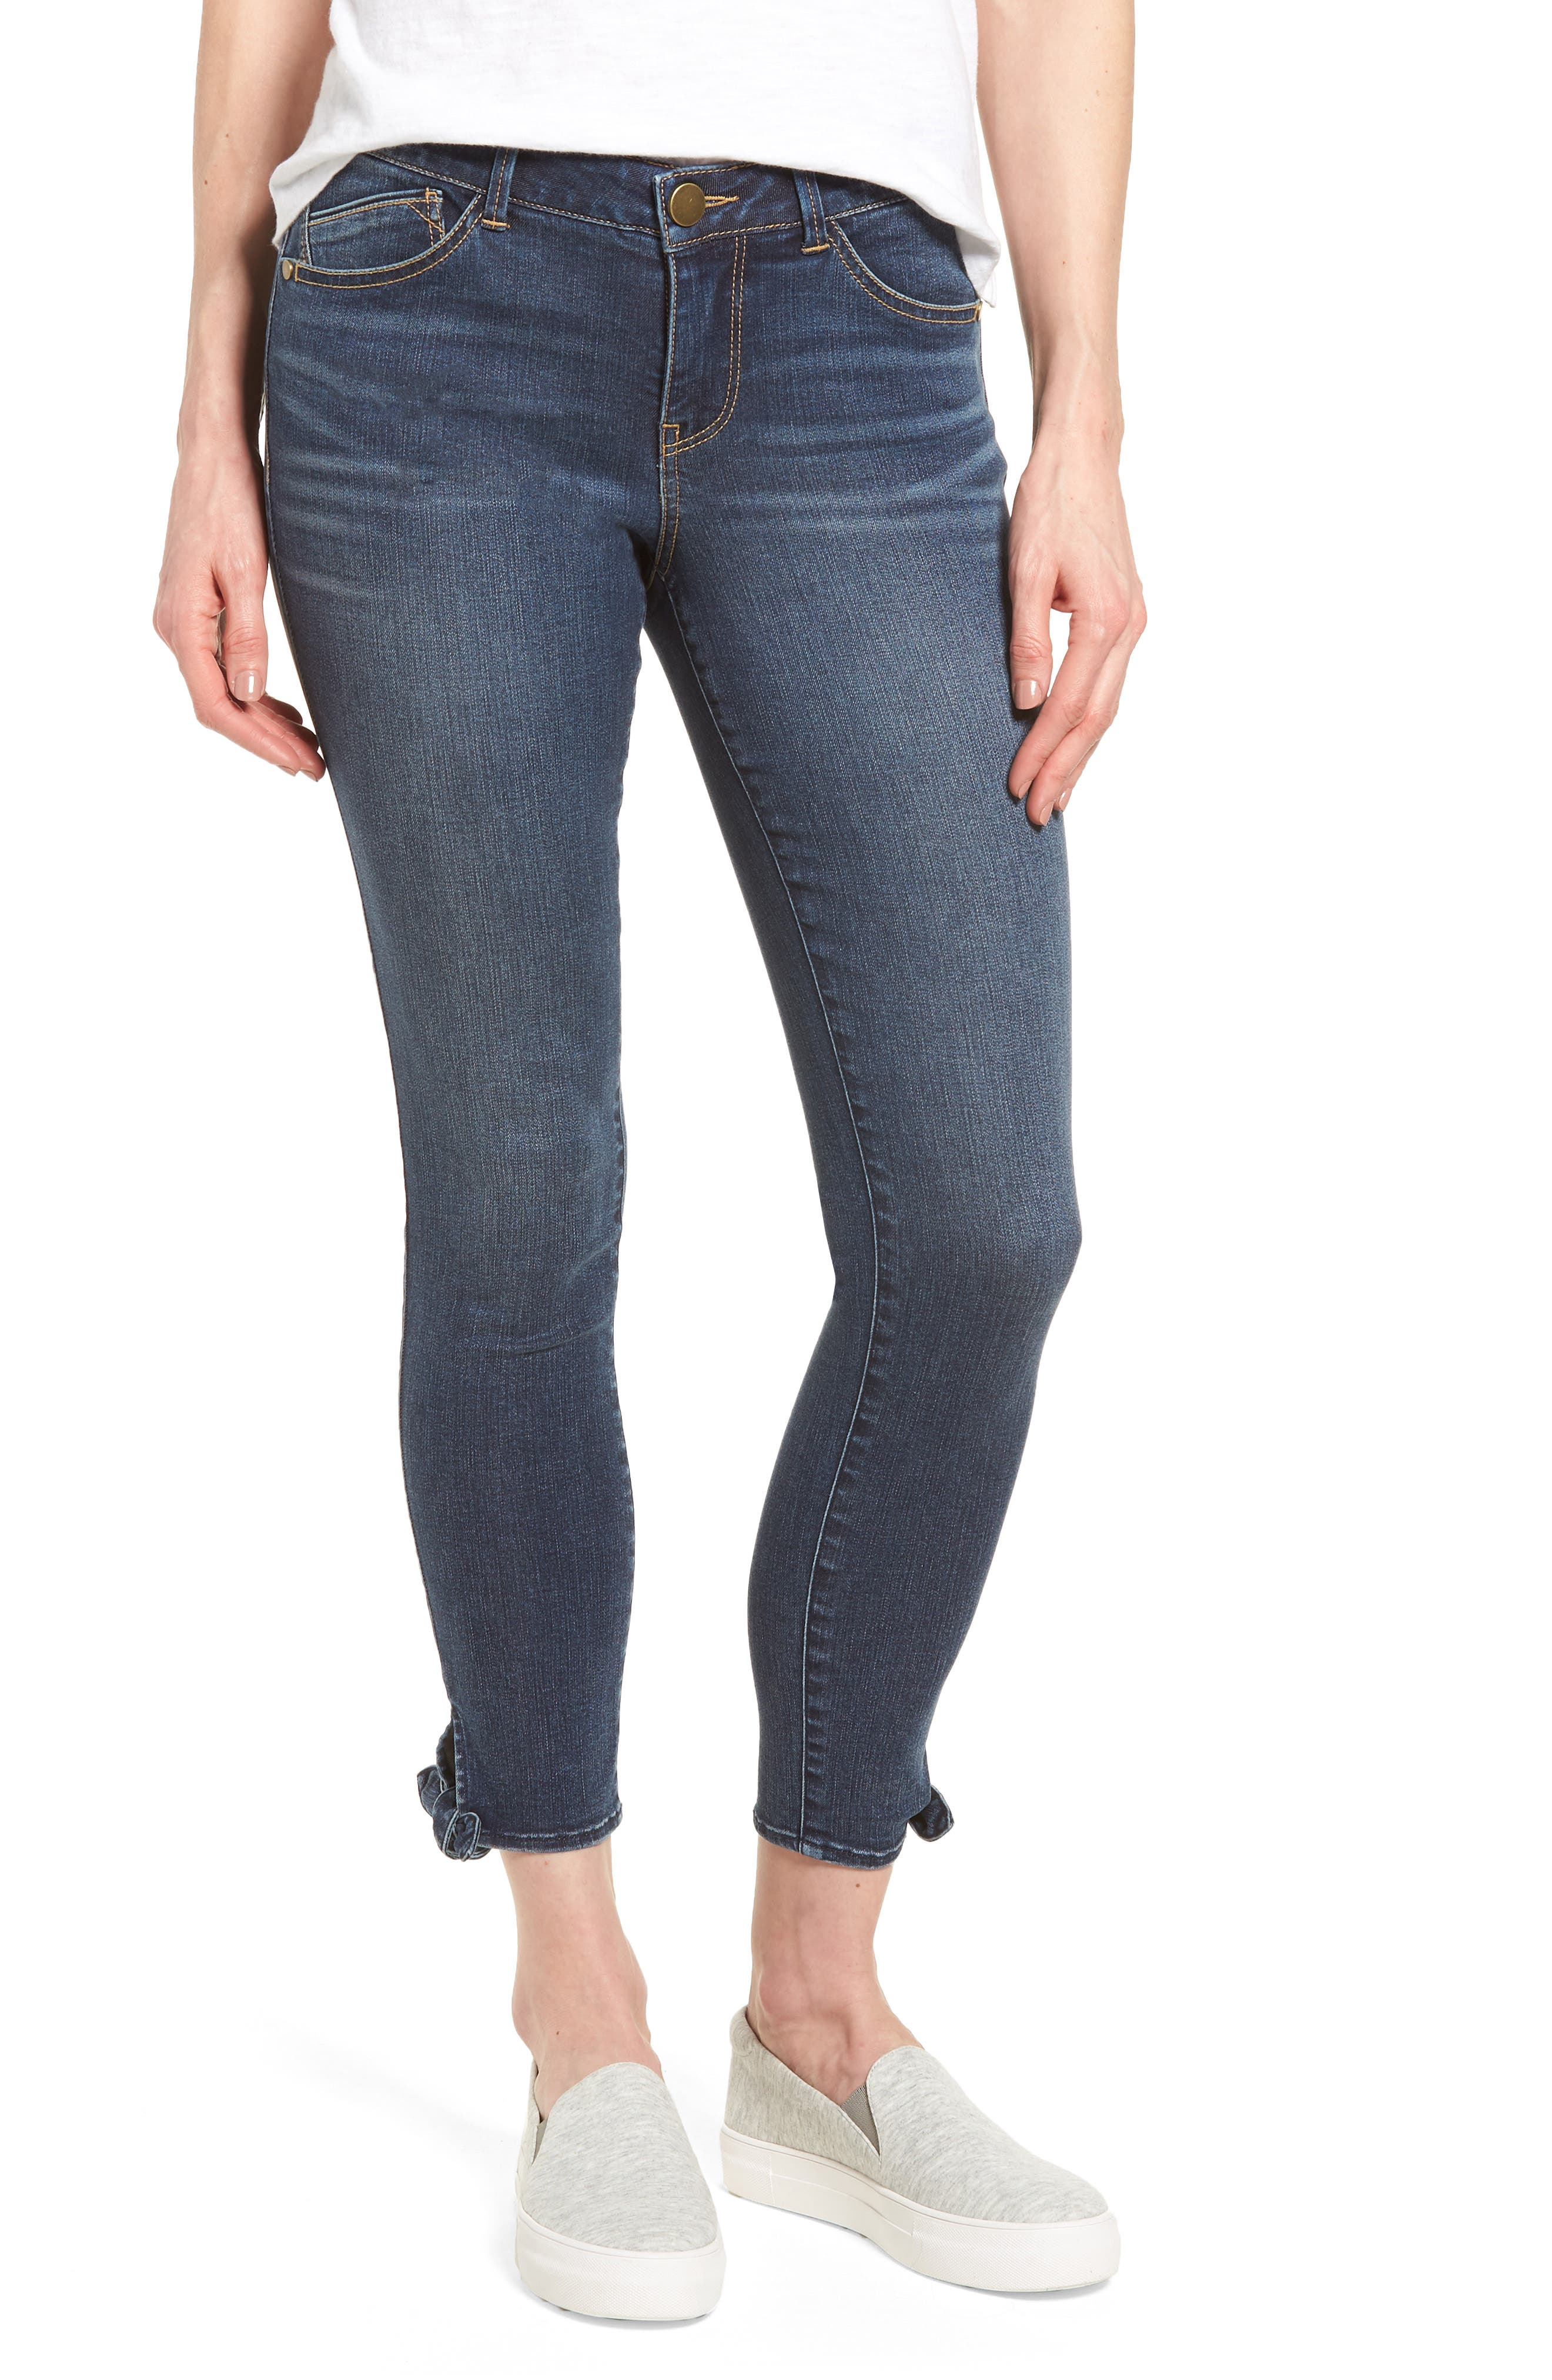 Ab-solution Ankle Skinny Skimmer Jeans,                             Main thumbnail 1, color,                             420